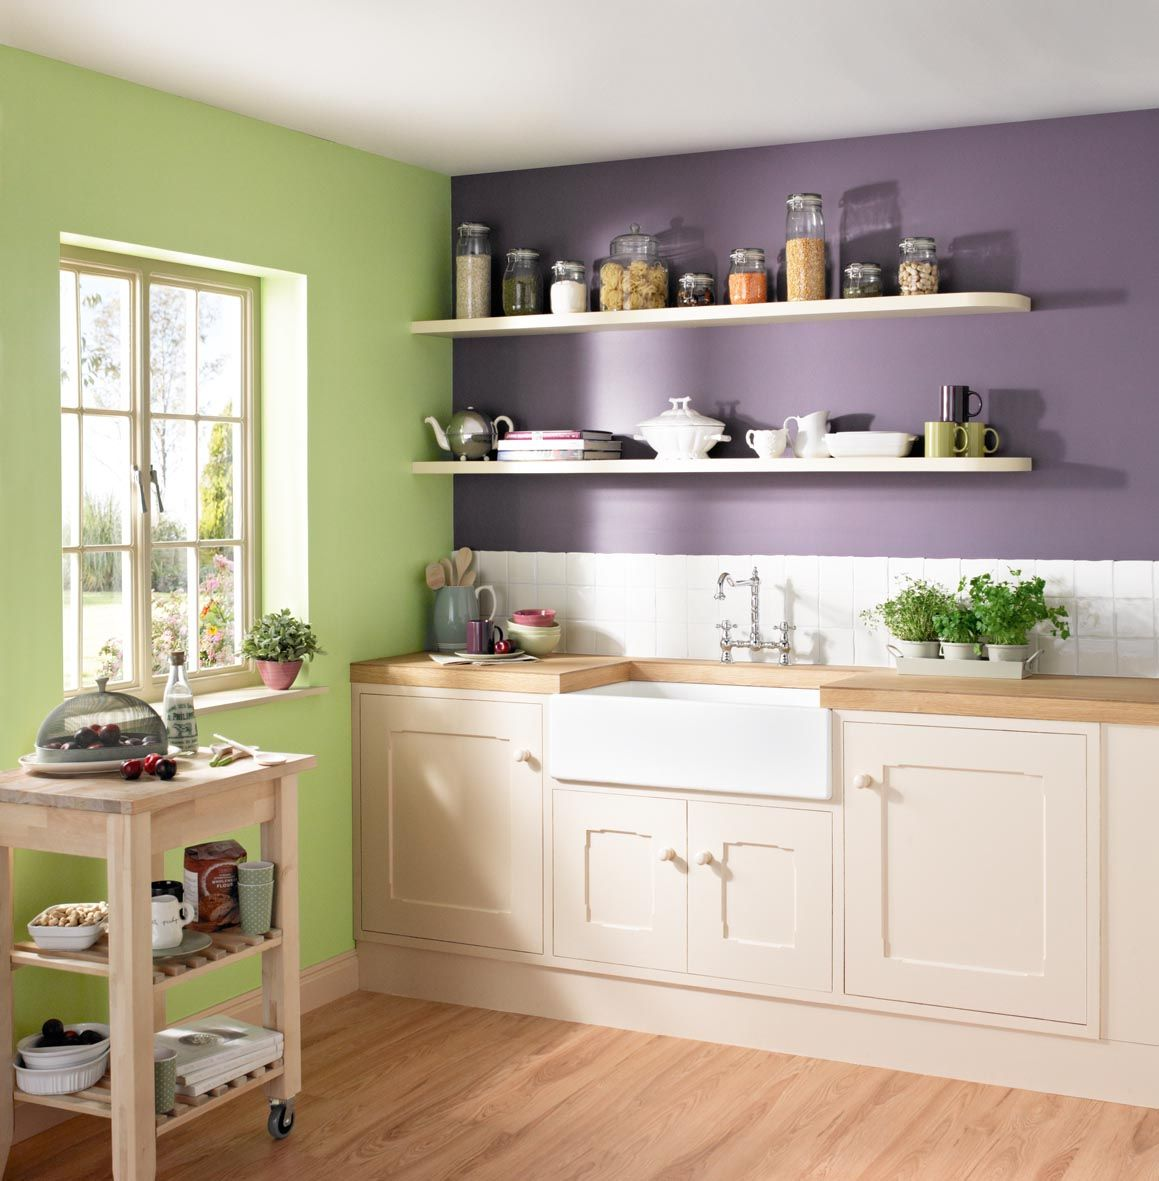 Kitchen Ideas Purple 10 beautiful kitchens with purple walls | belfast sink, plum